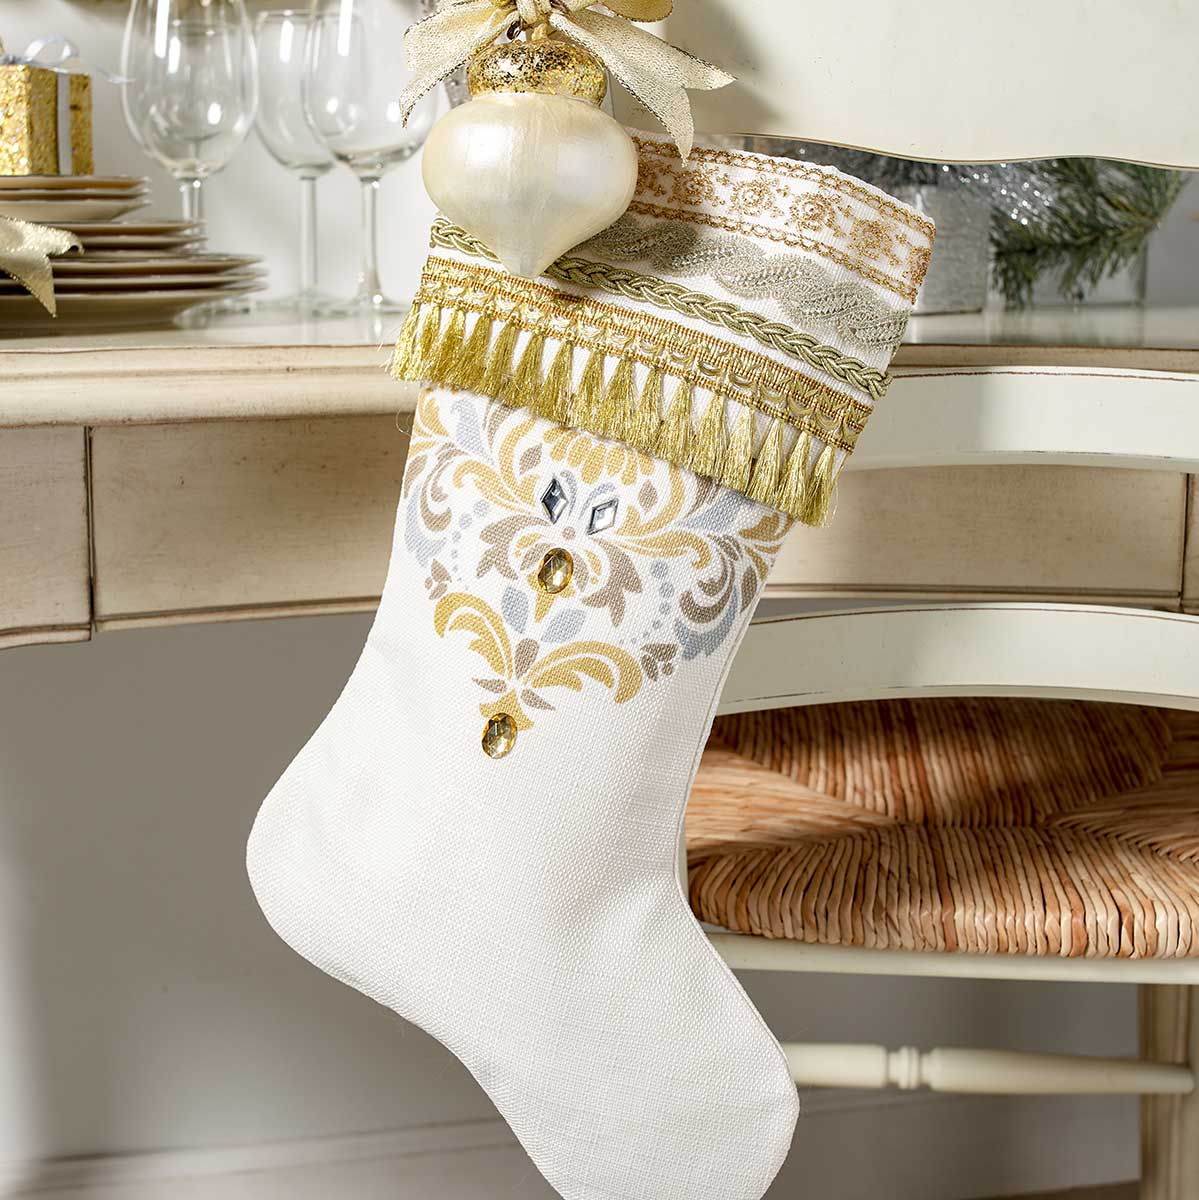 DIY Ornate Gold Stocking